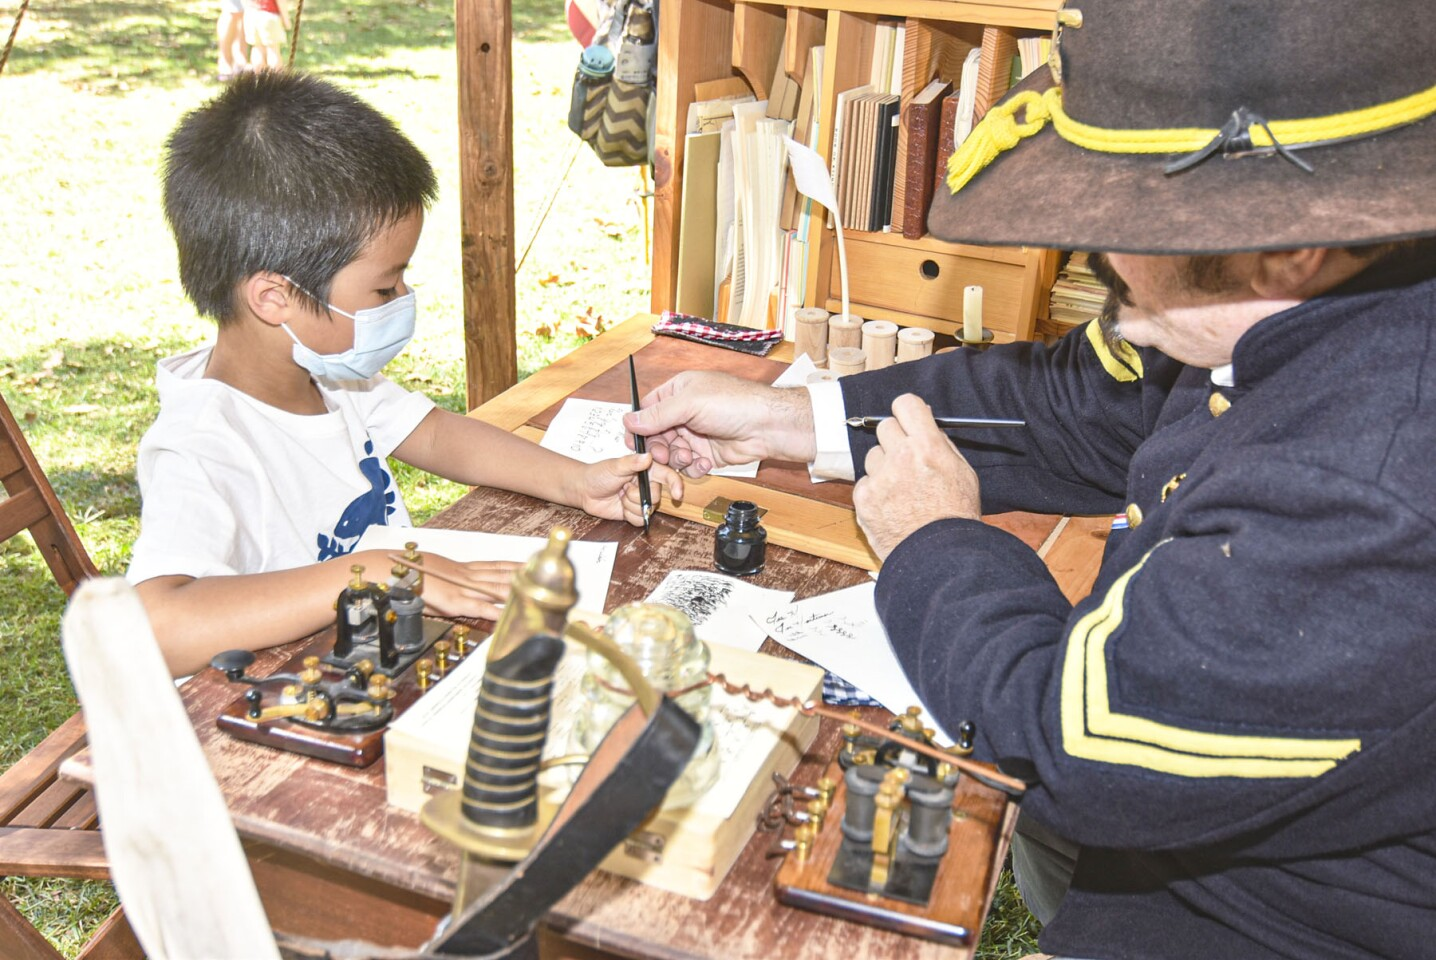 Holden Cheng learning how to write with a dip pen and ink well under the guidance of reenactor Joe Mortimer.